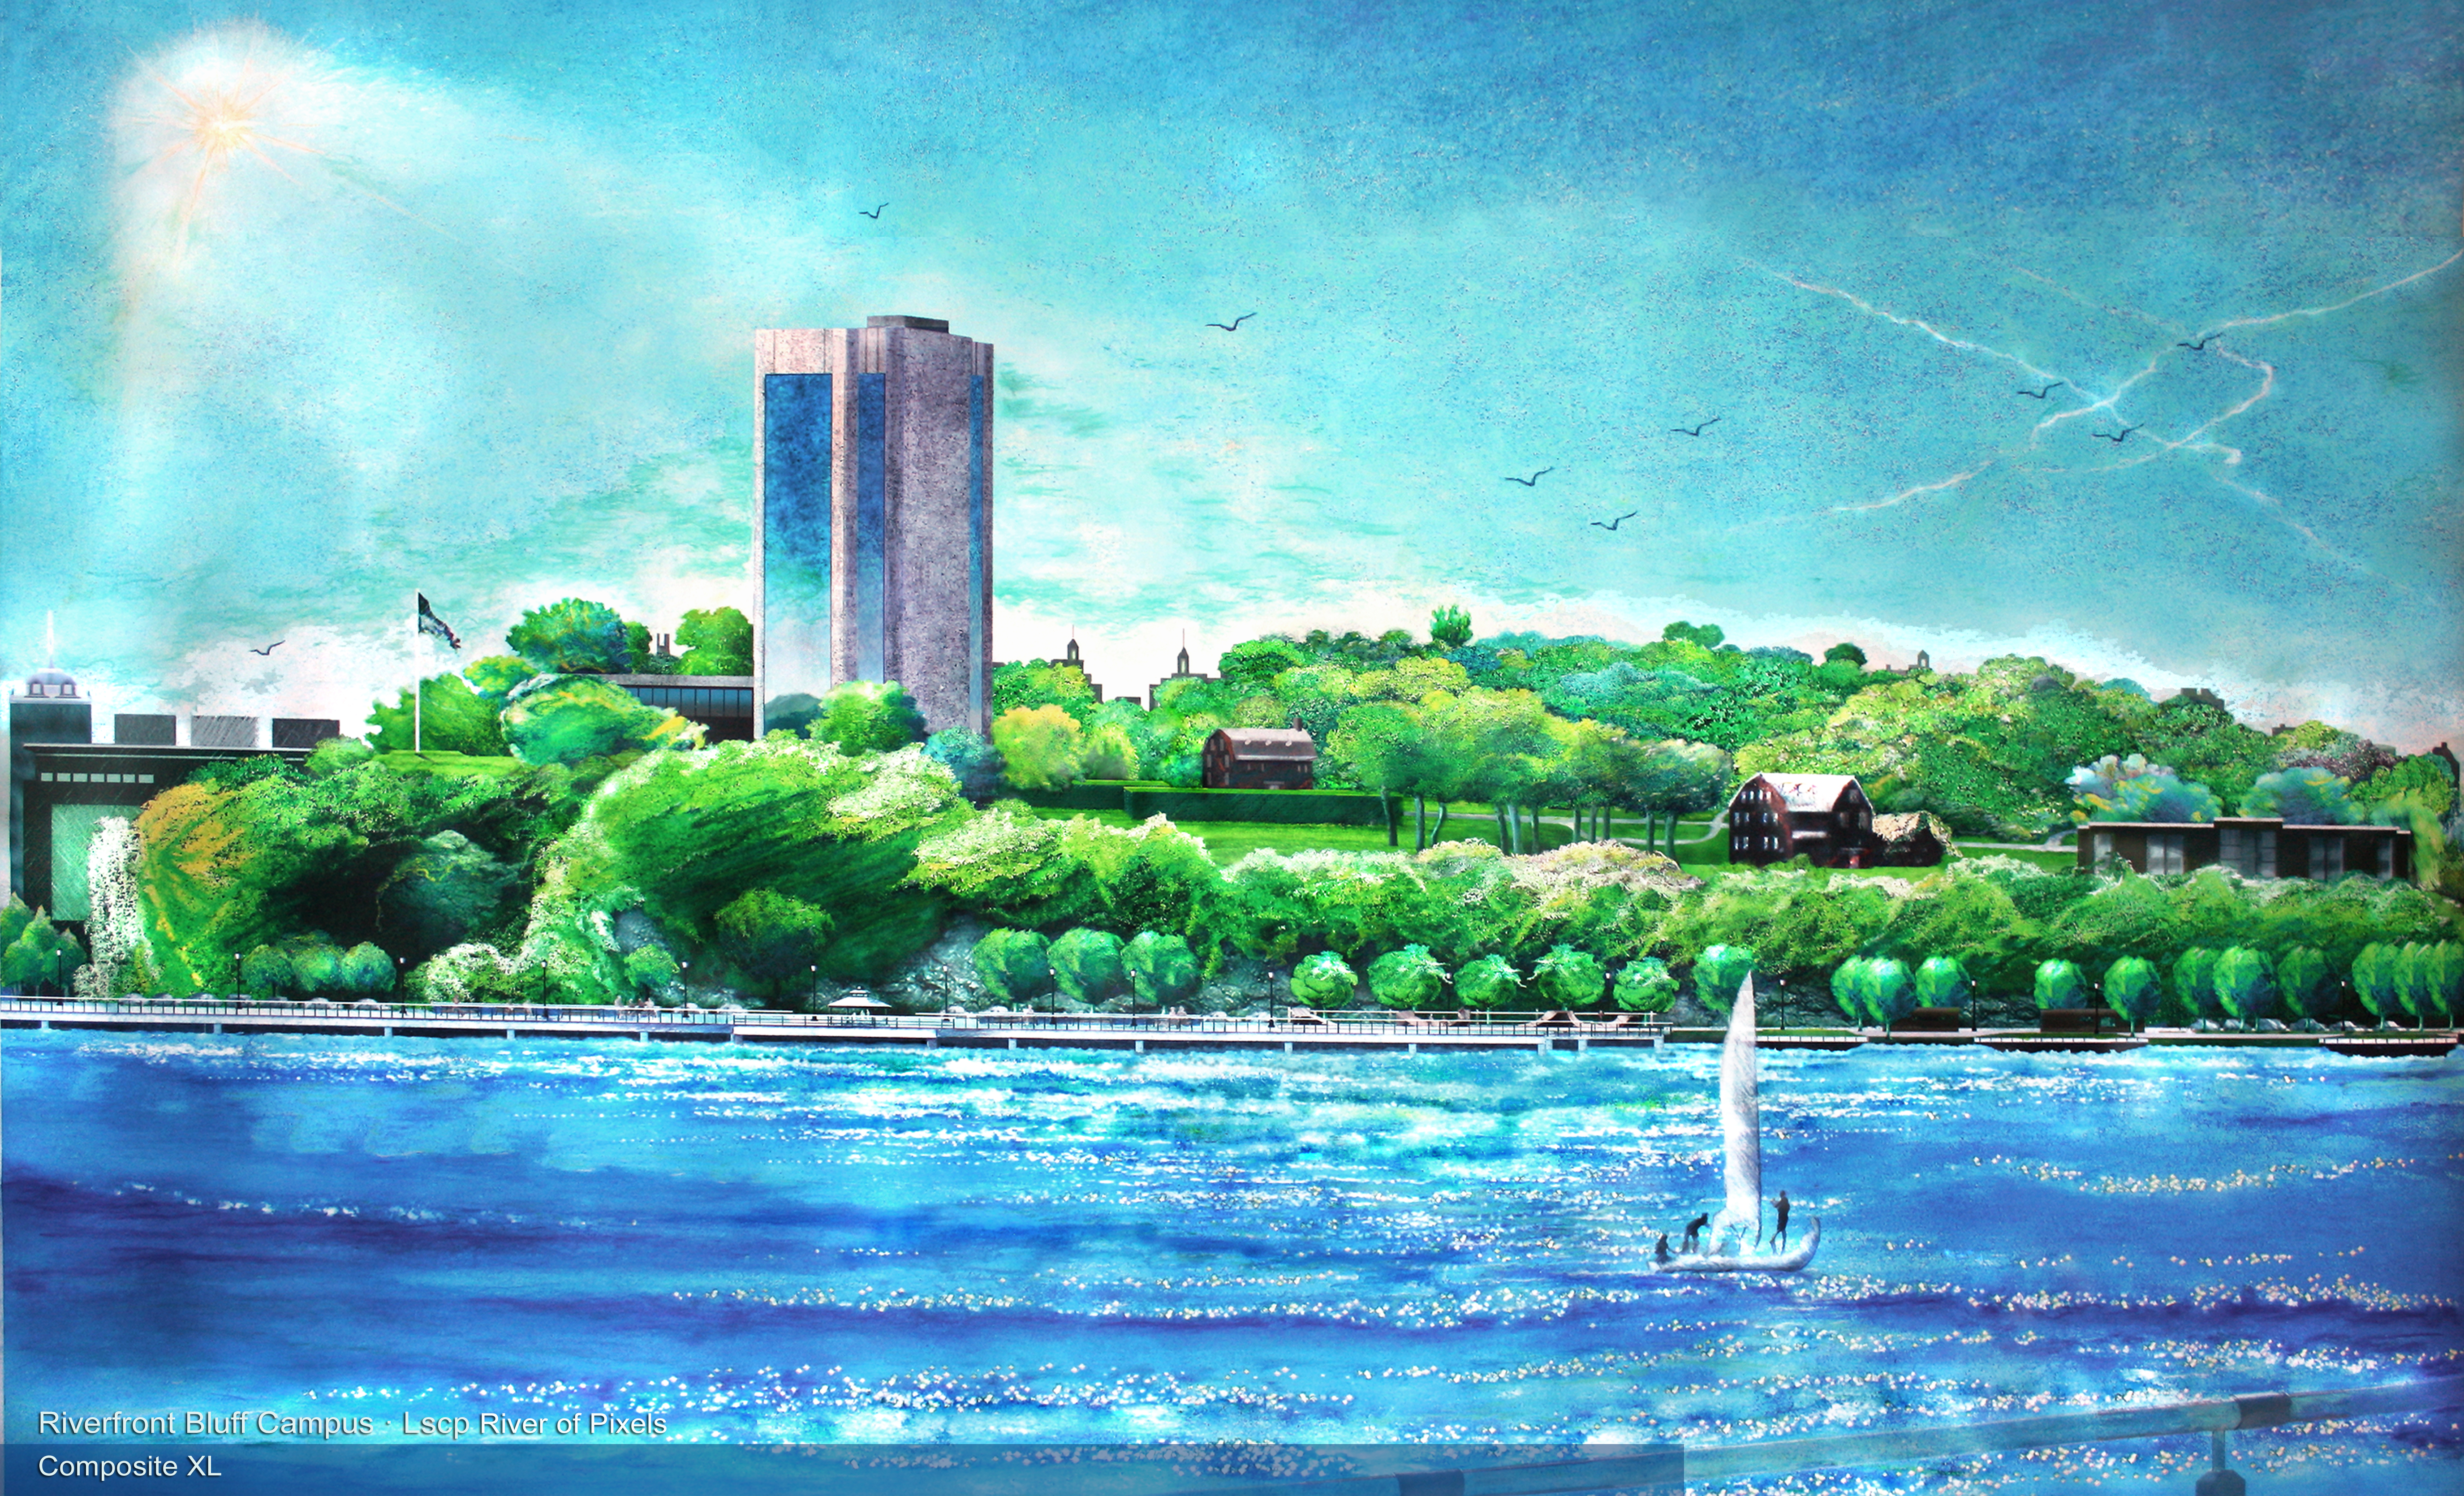 IT_Riverfront_Bluff_Campus_Landscape